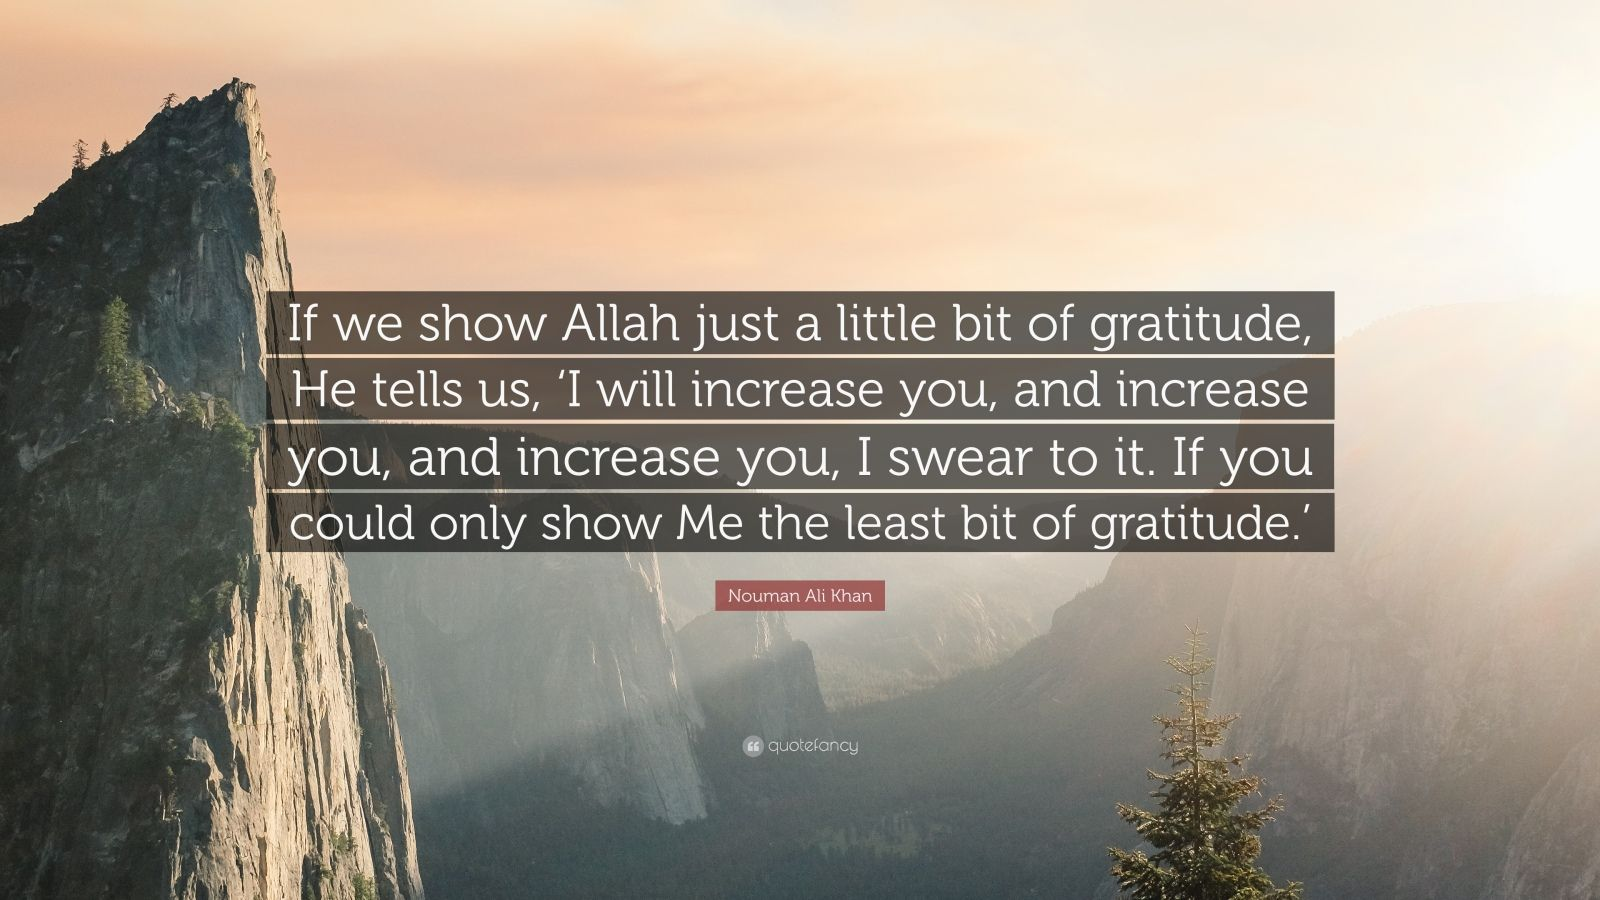 """Nouman Ali Khan Quote: """"If we show Allah just a little bit of gratitude, He tells us, 'I will increase you, and increase you, and increase you, I swear to it. If you could only show Me the least bit of gratitude.'"""""""